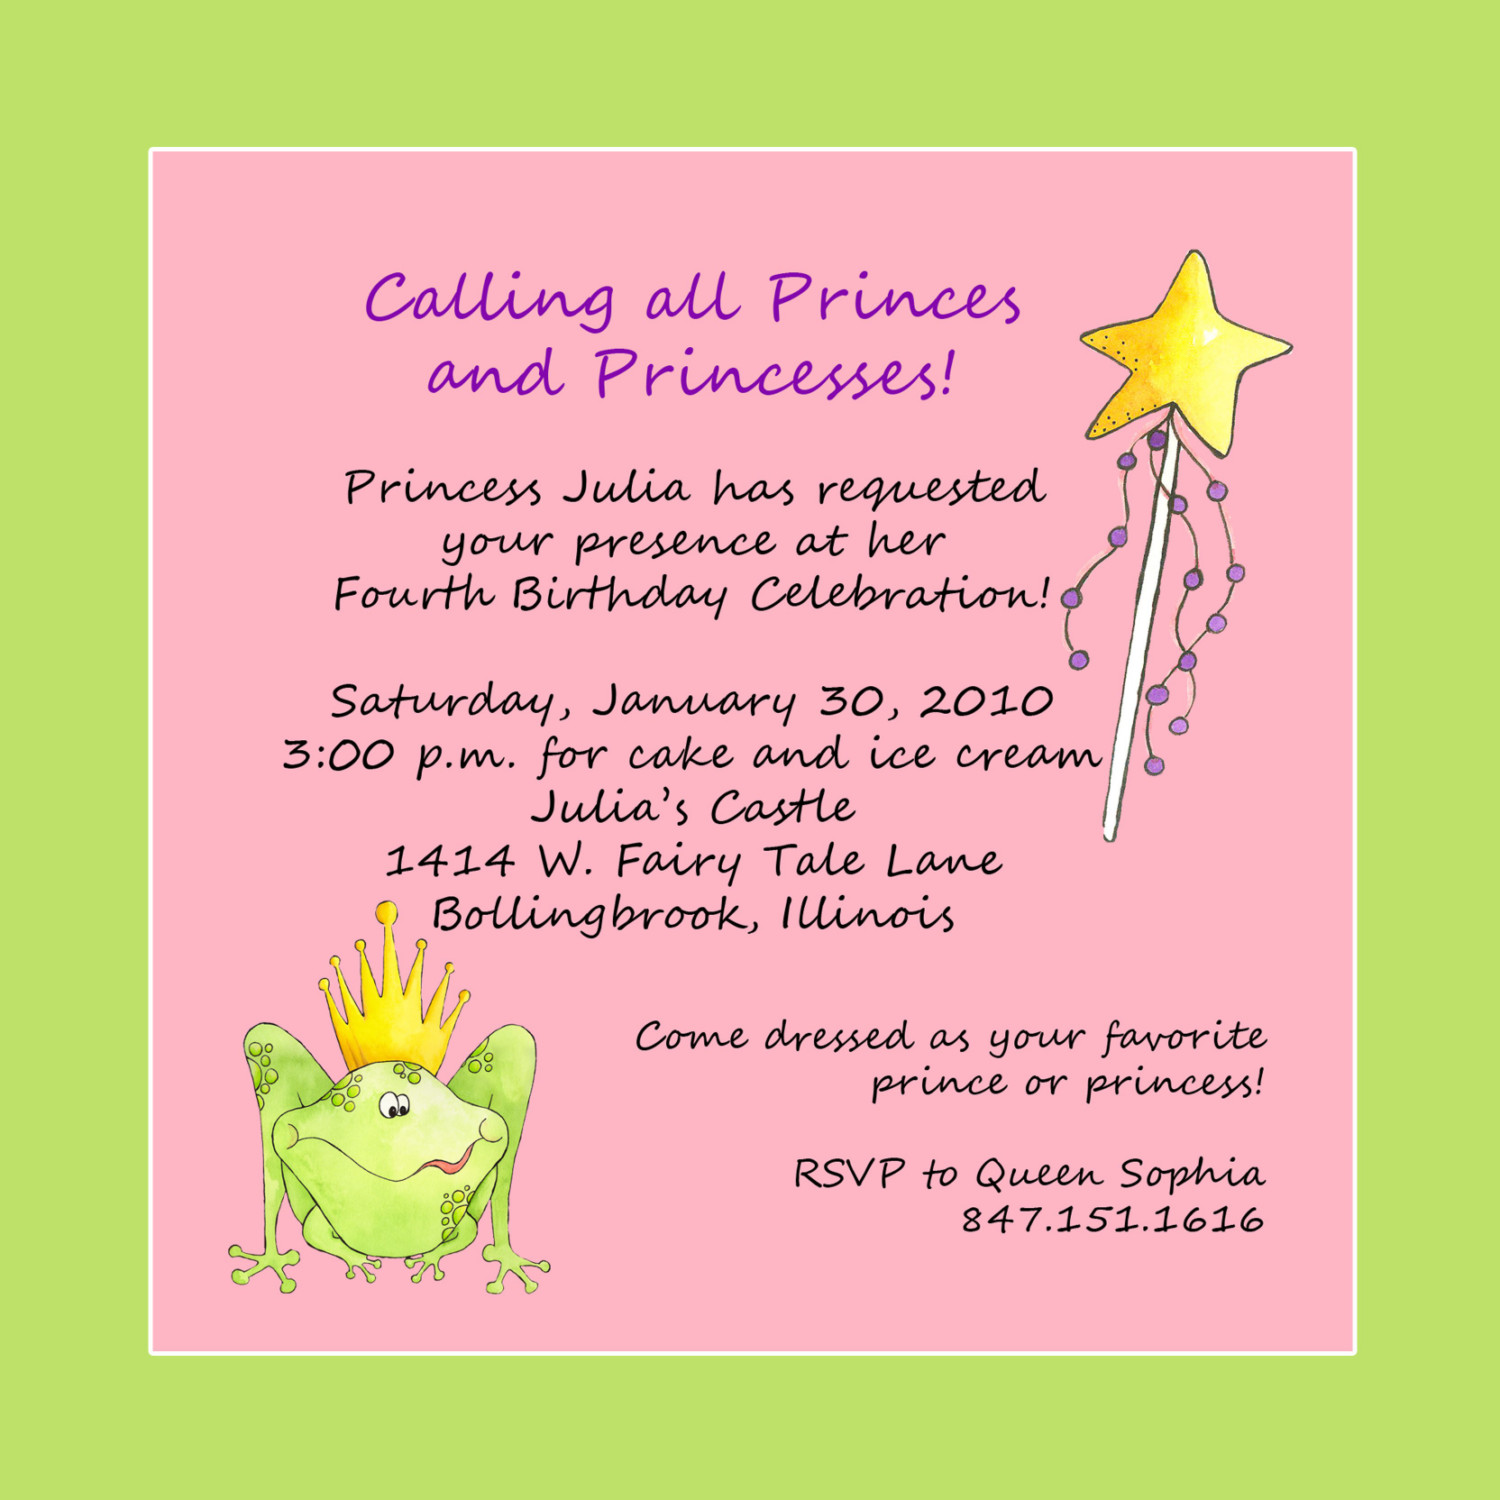 Fine Party Invitation Poems Collection Card Ideas